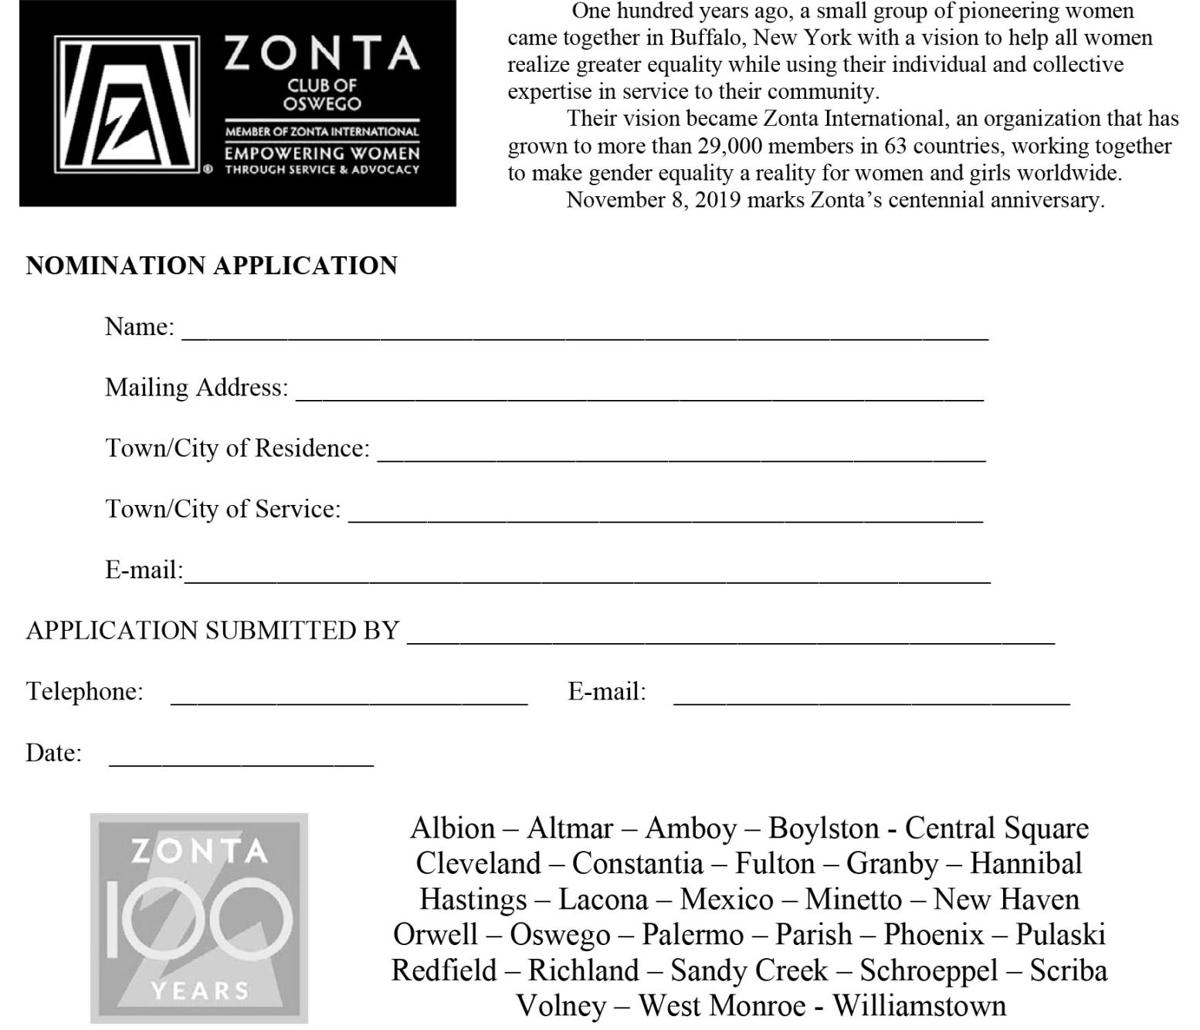 Zonta seeks nominations for 'unsung heroes'